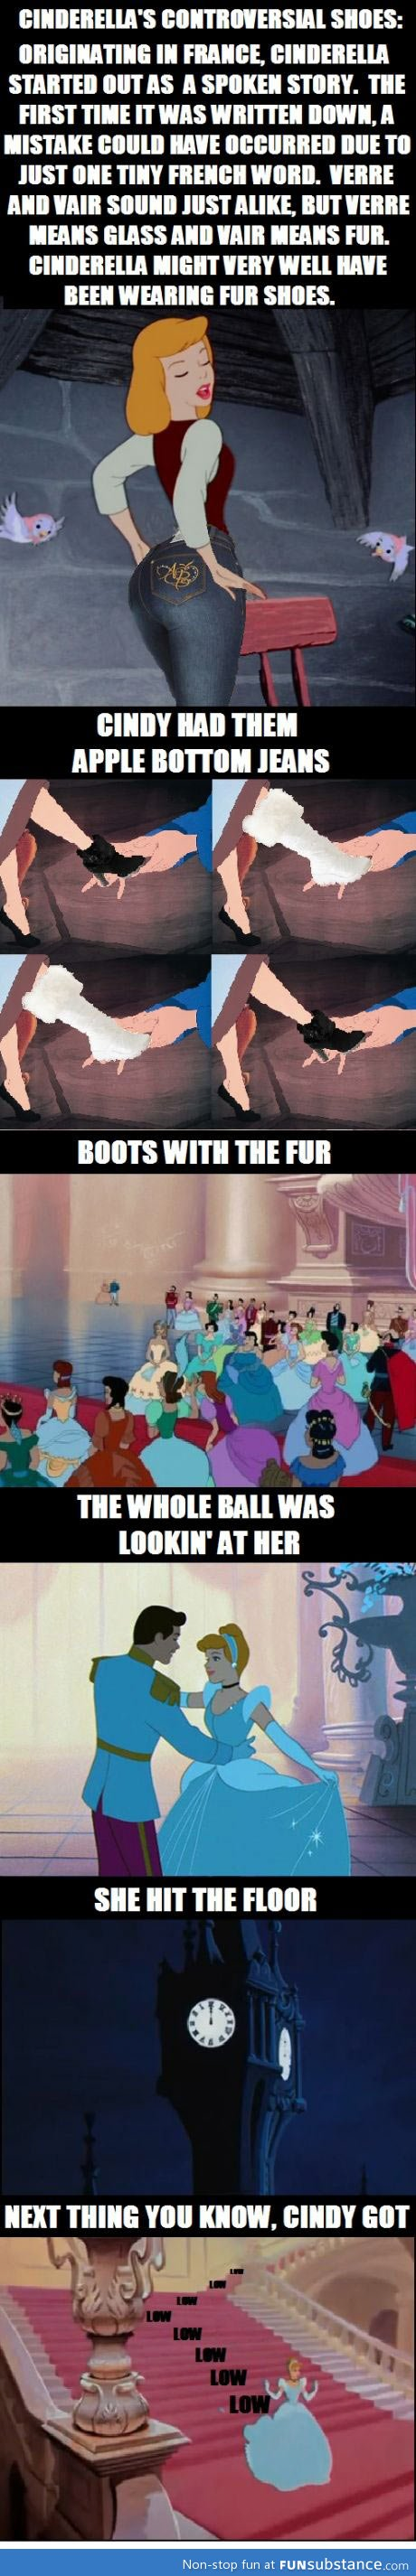 What if cinderella really had fur shoes? - FunSubstance